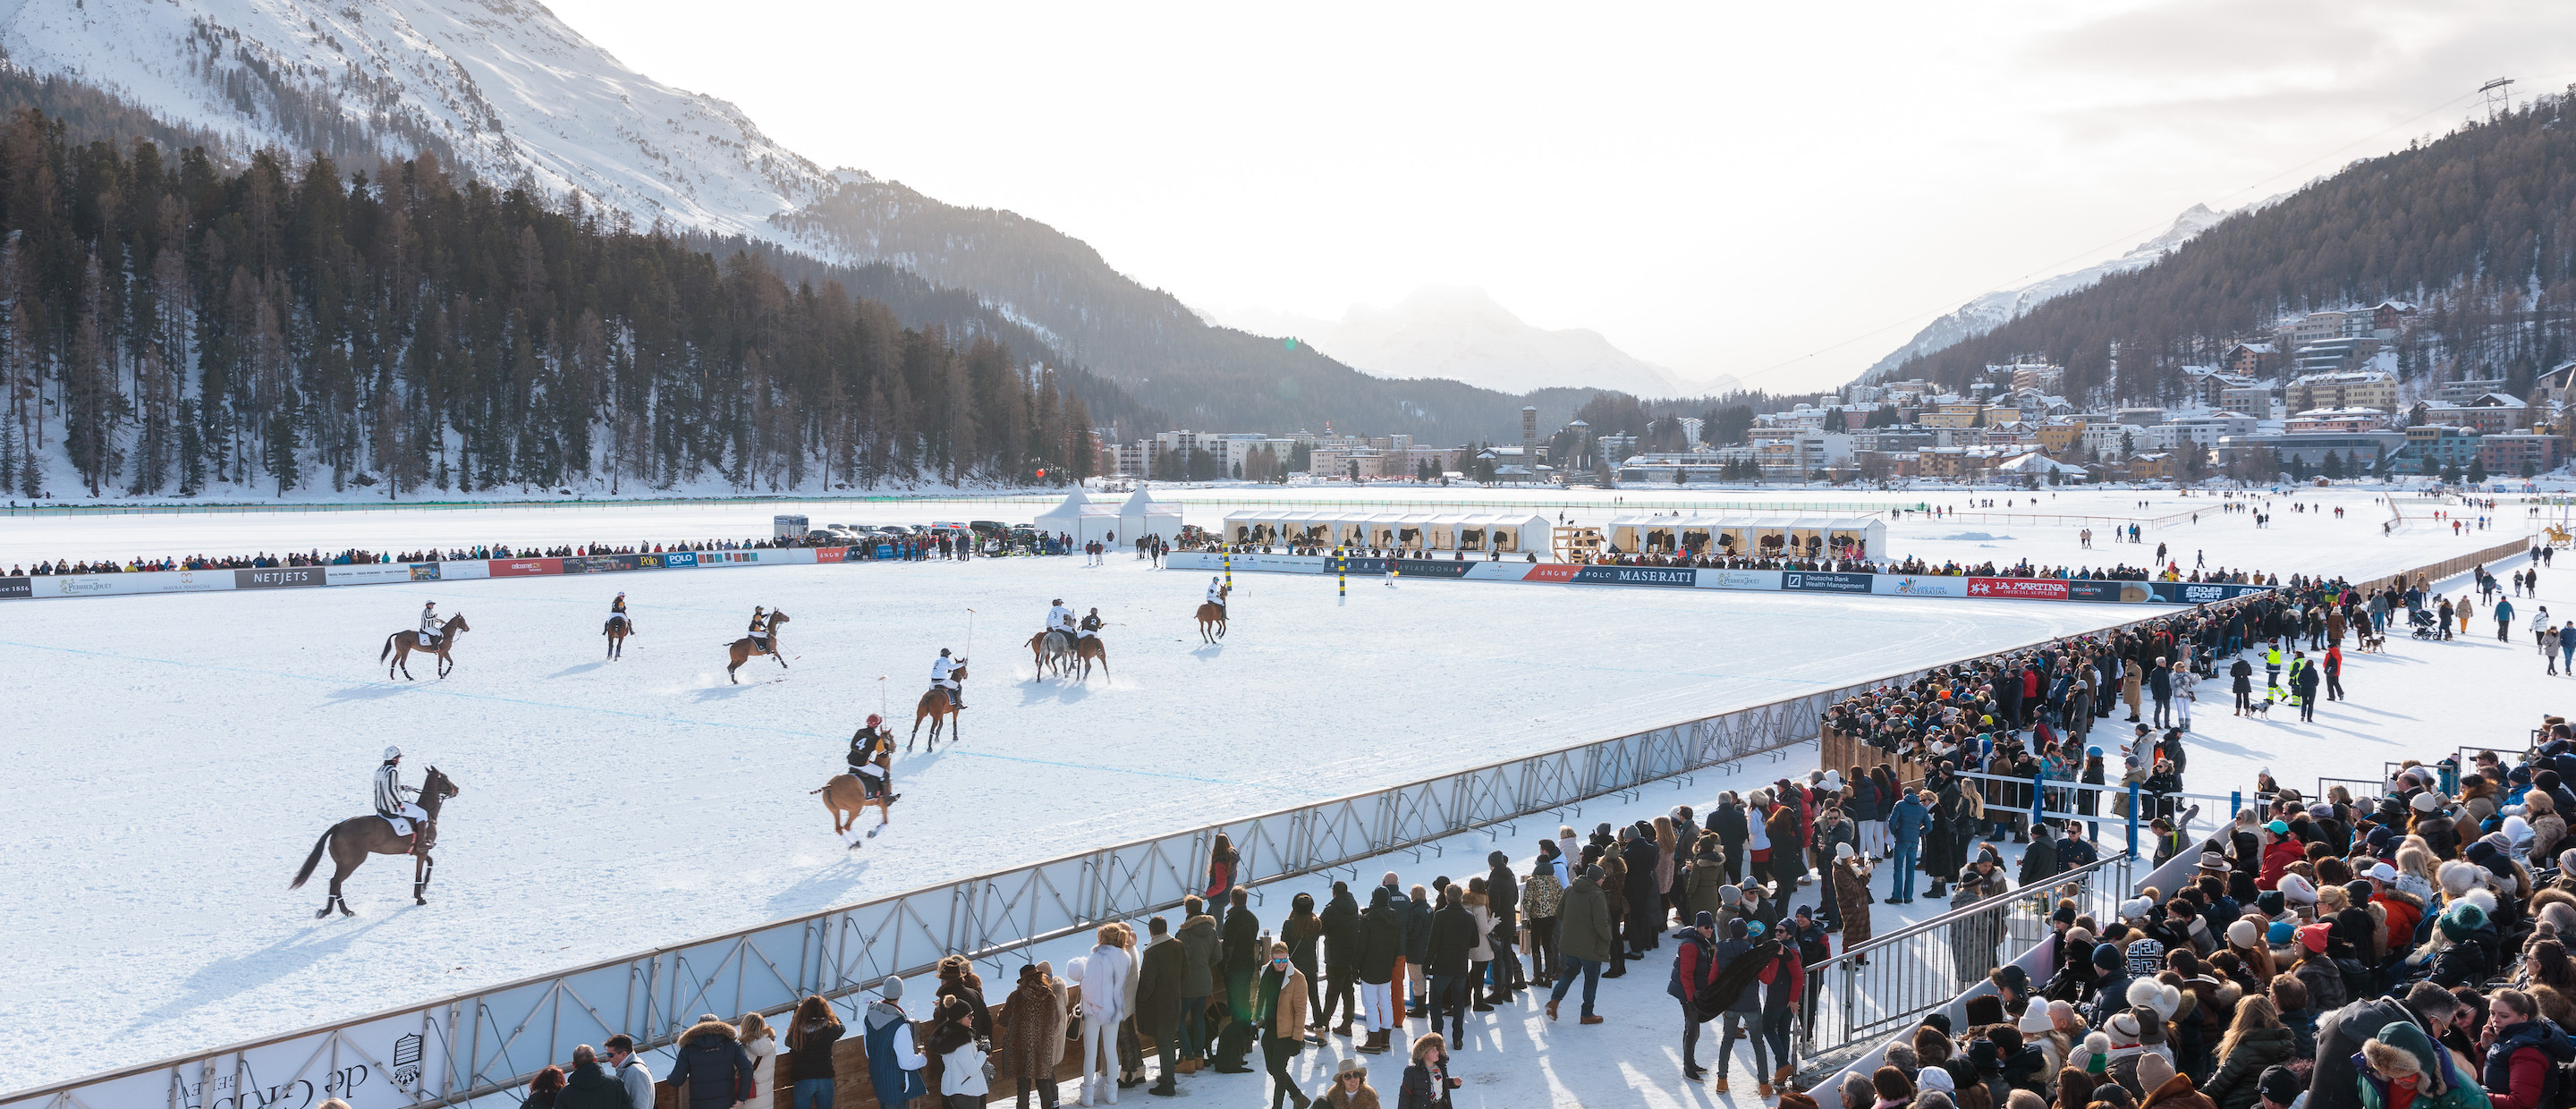 Riding high: the patrons and ponies of St. Moritz